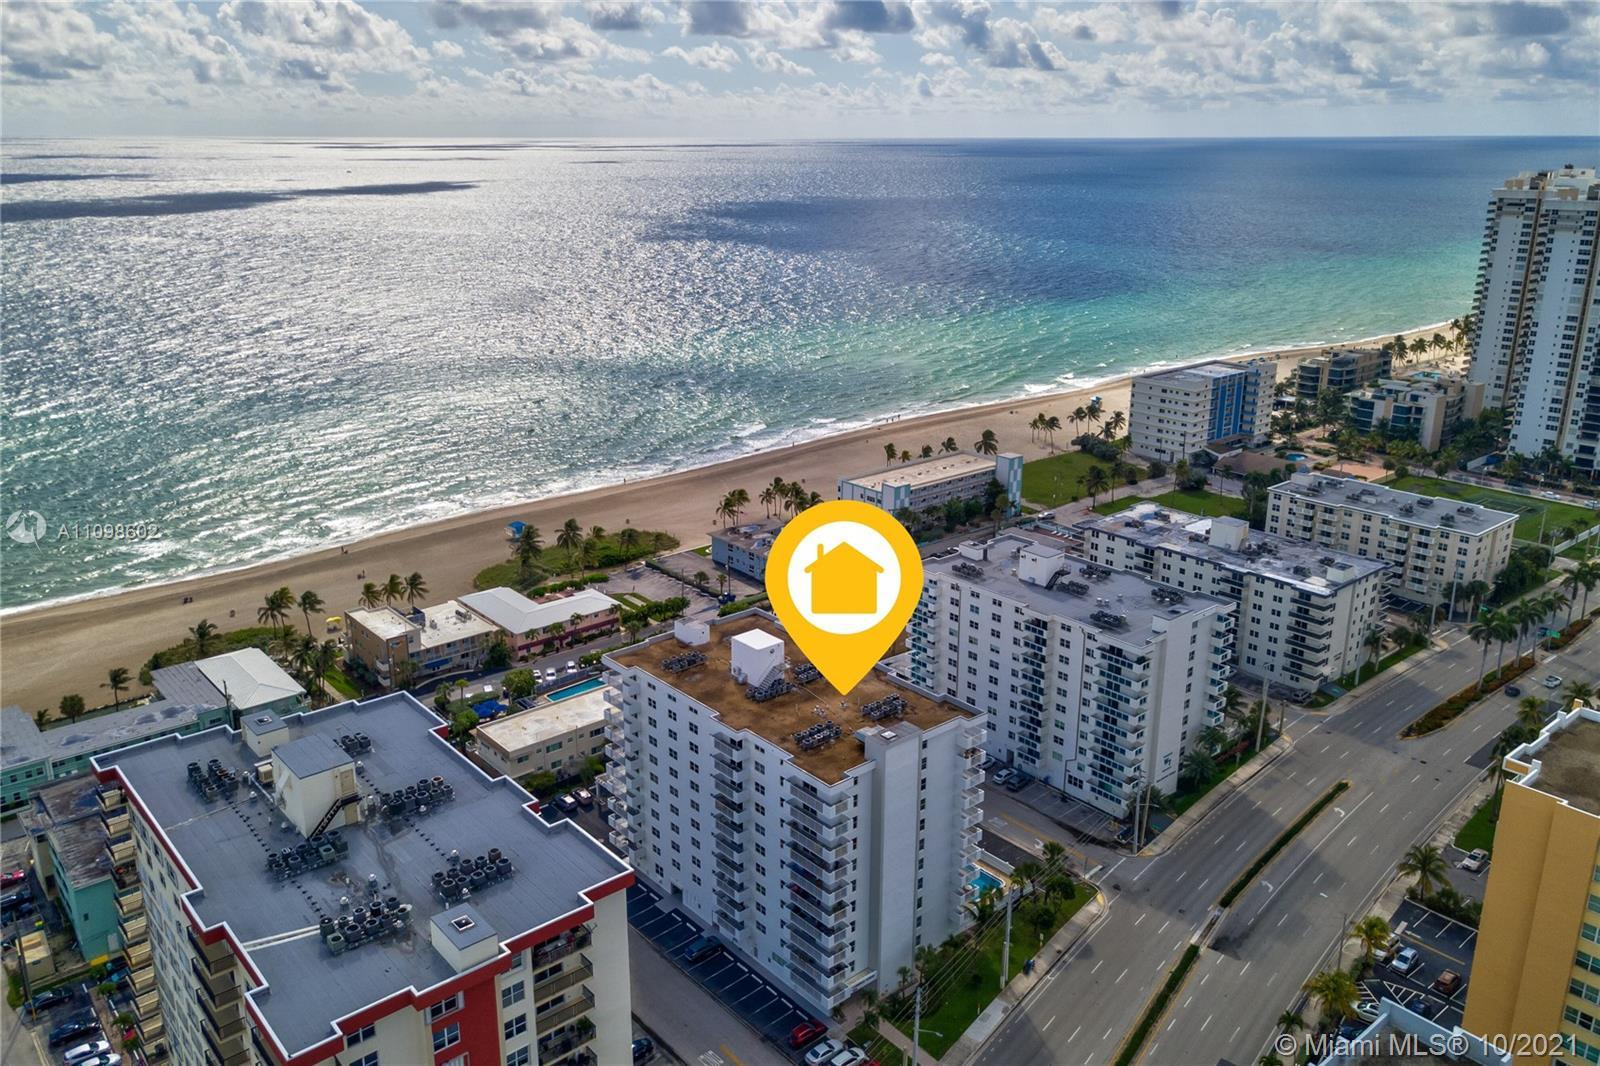 RENOVATED 2/2 STEPS FROM THE BEACH! Spacious move-in ready apartment with washer & dryer in unit, ne